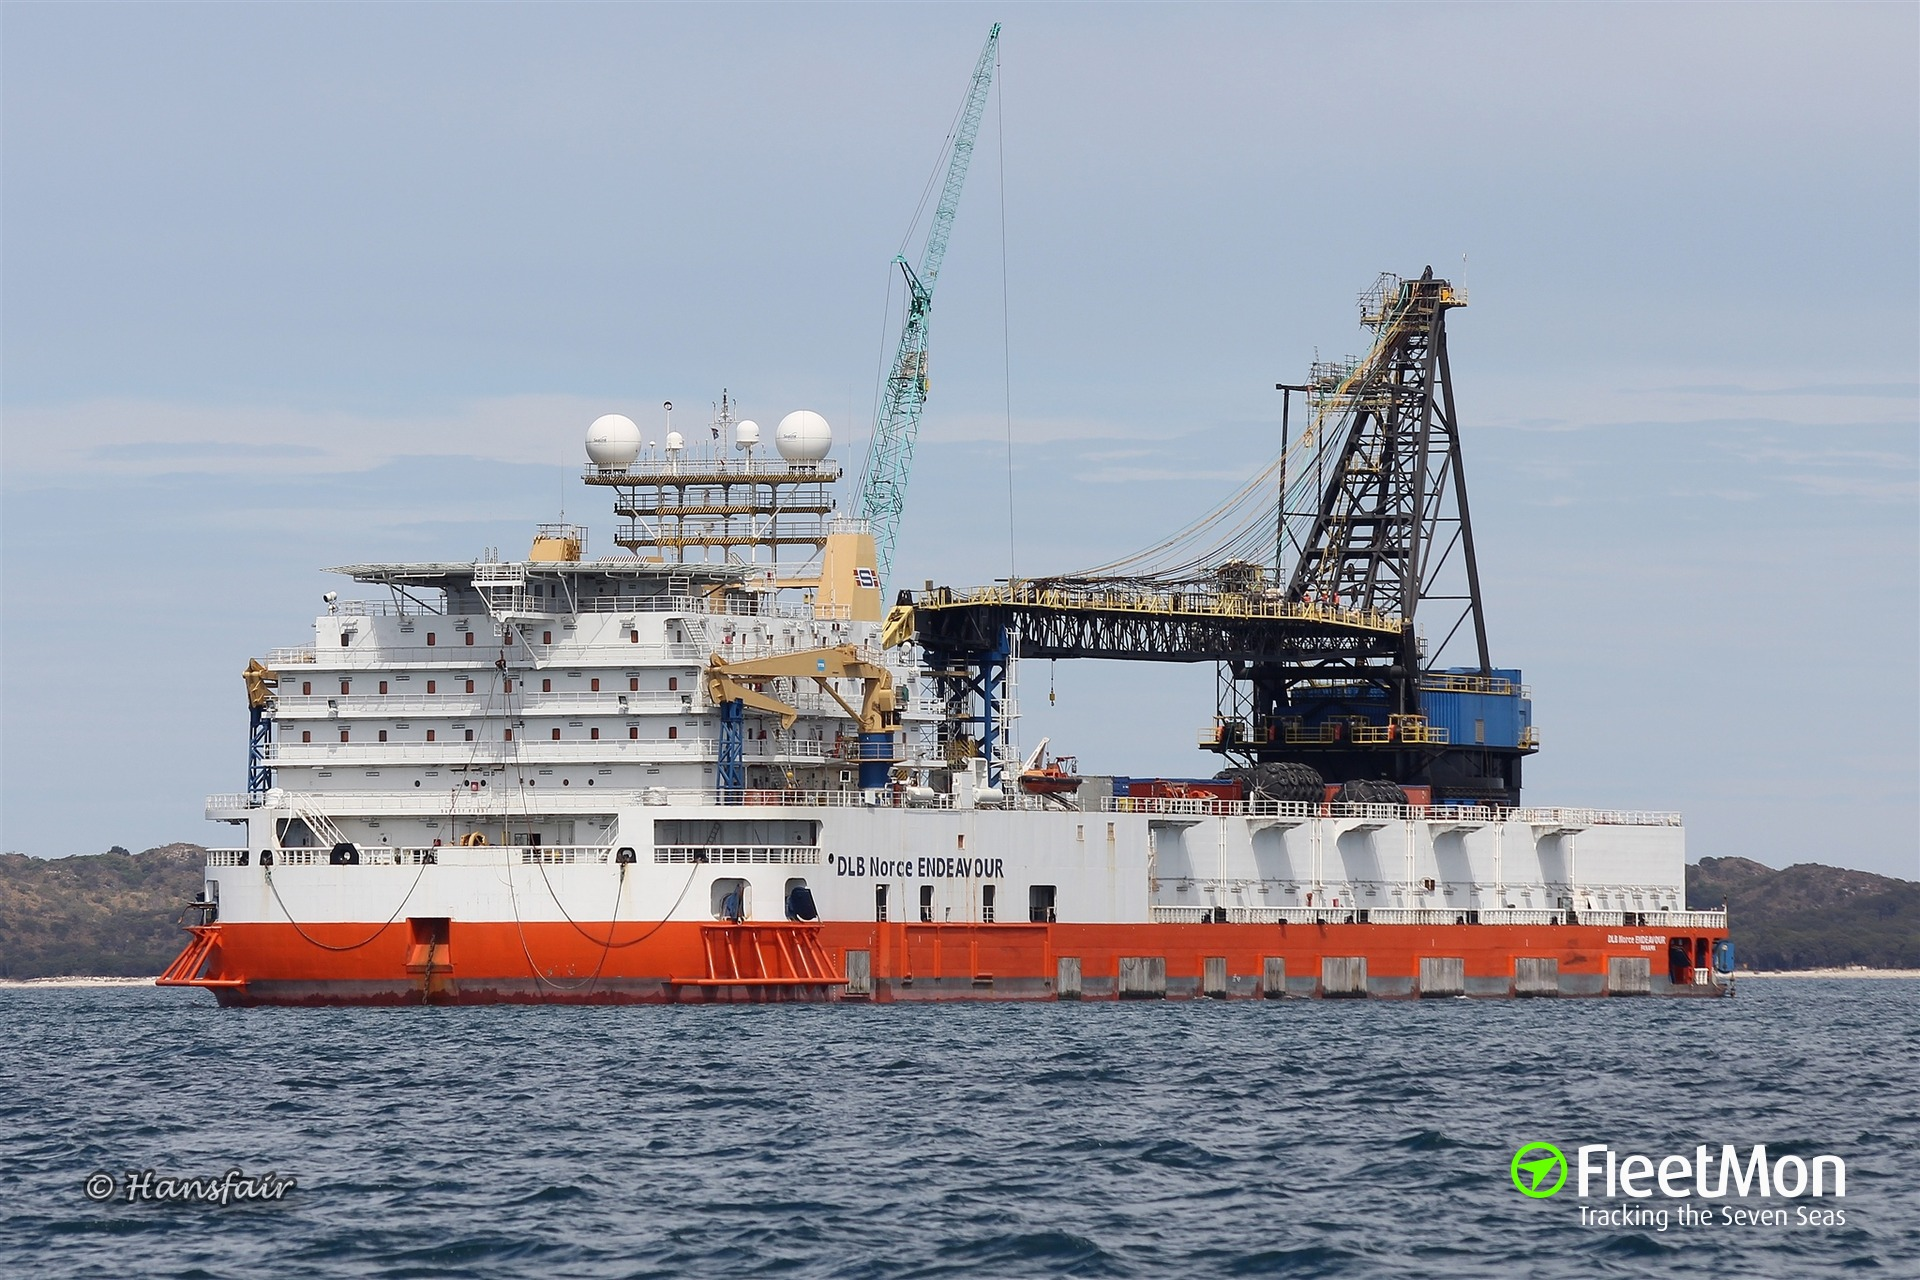 Marine pipe-laying barge DLB Norce Endeavour disabled and adrift in Indian ocean